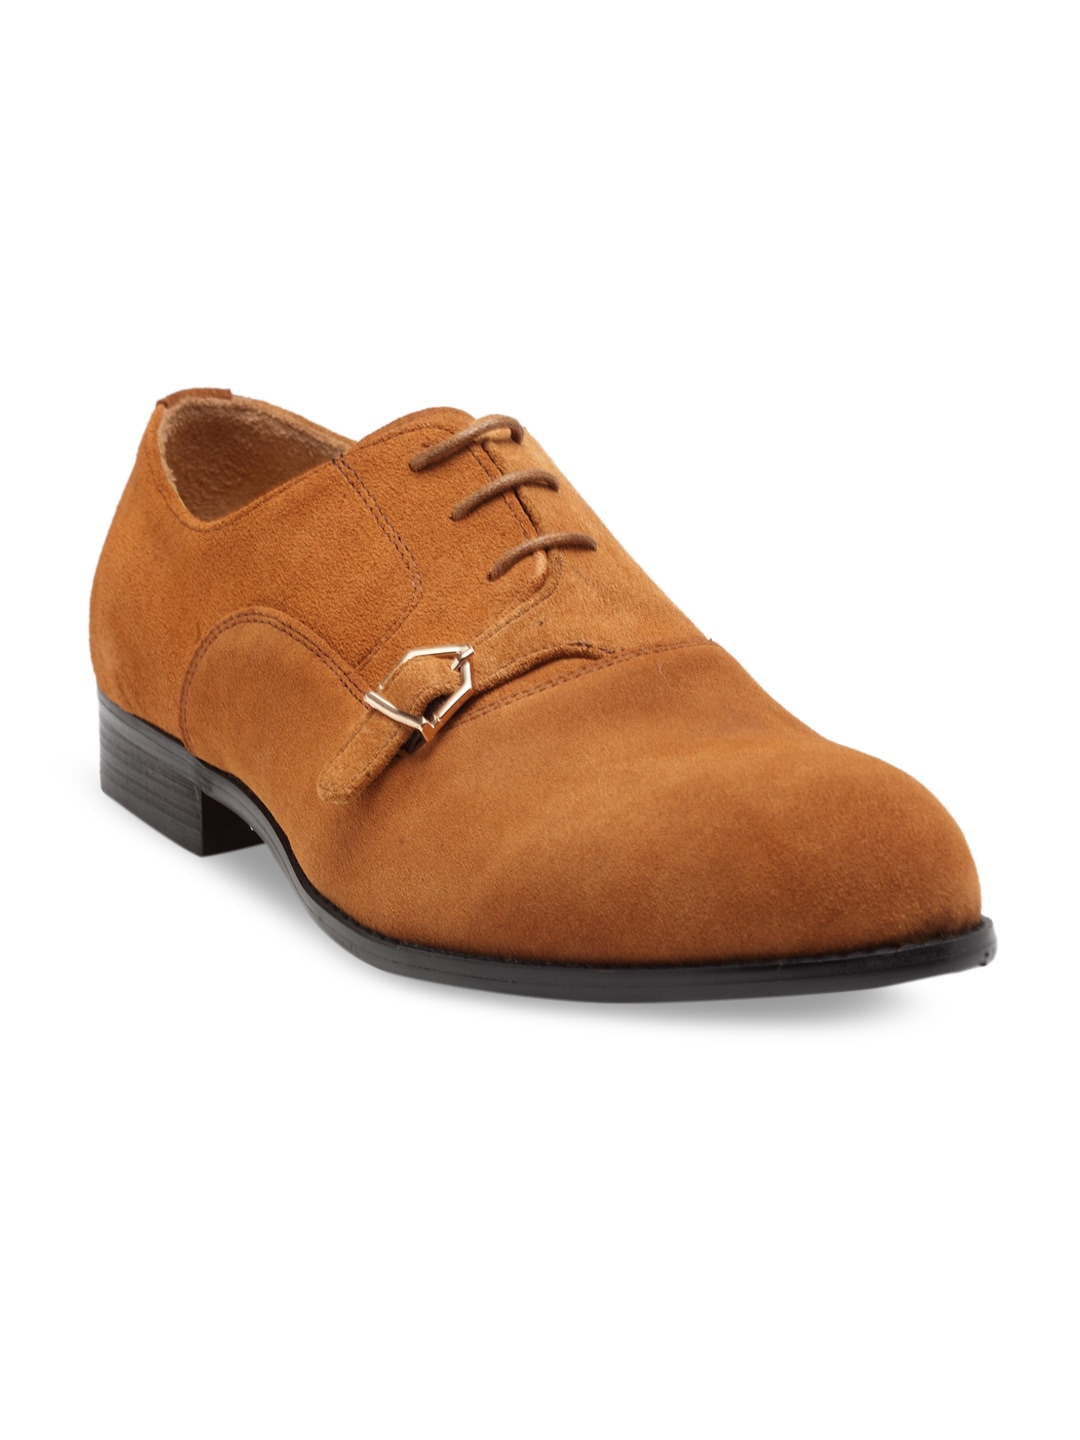 Monk Shoes Buy Monk Shoes Online In India Myntra